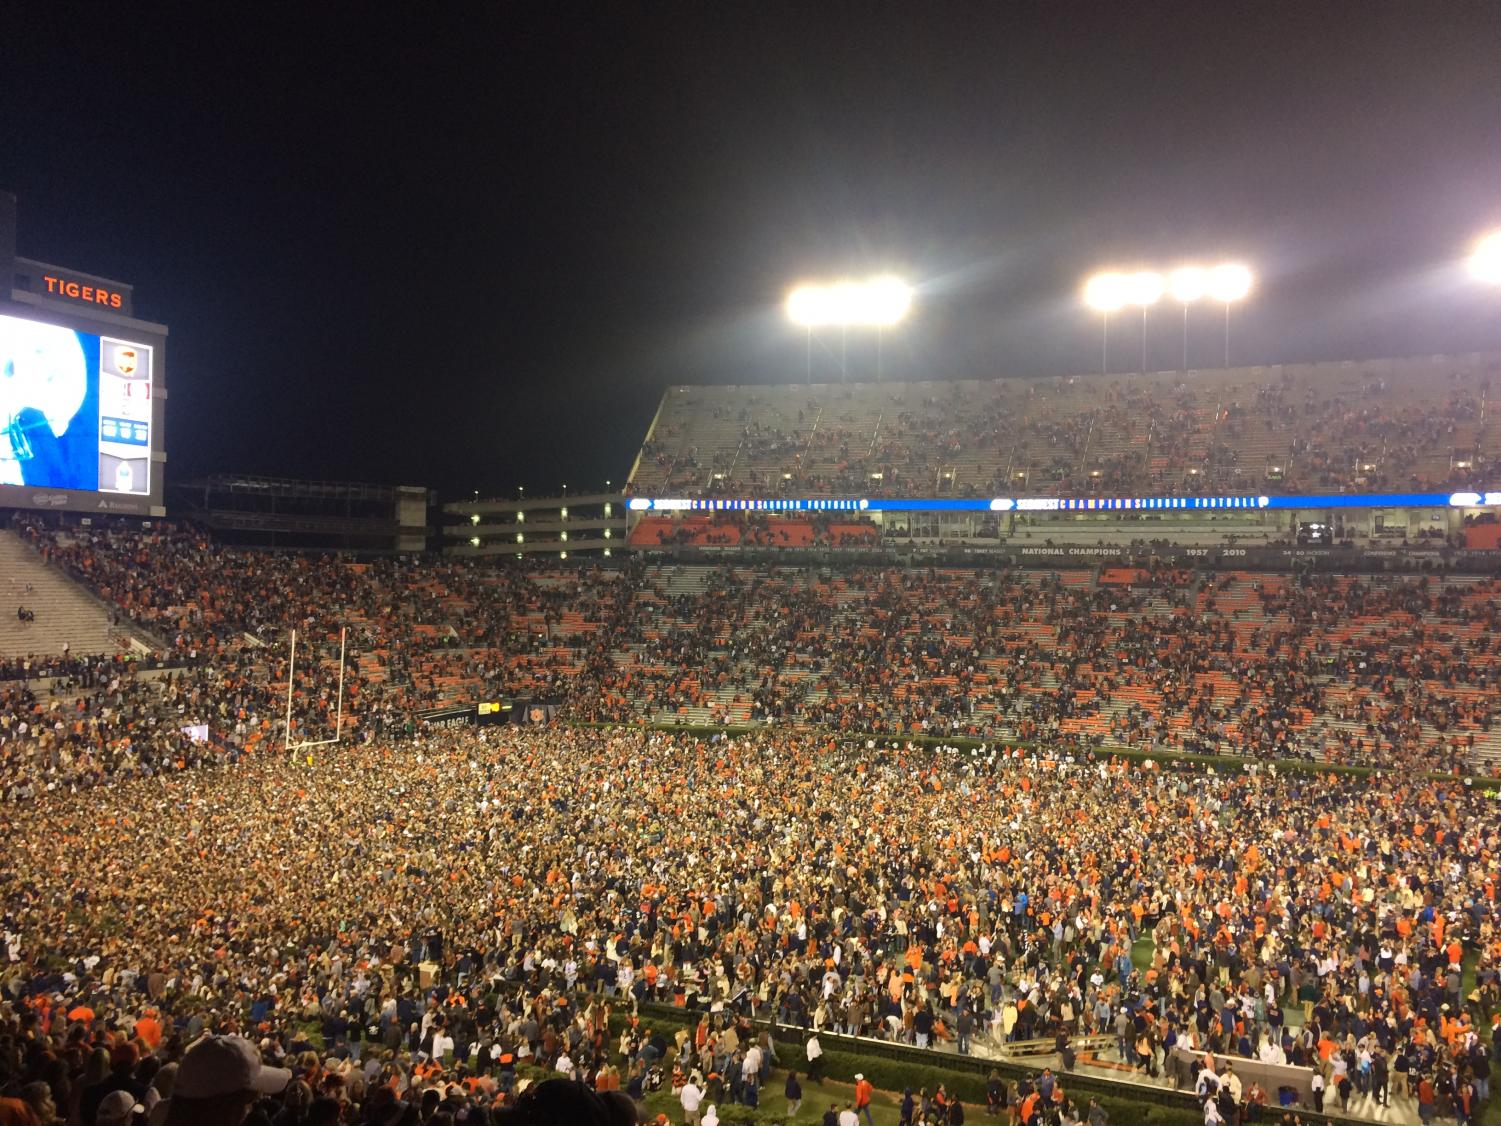 This is Auburn's third offense against the SEC rule prohibiting rushing the field after a victory.